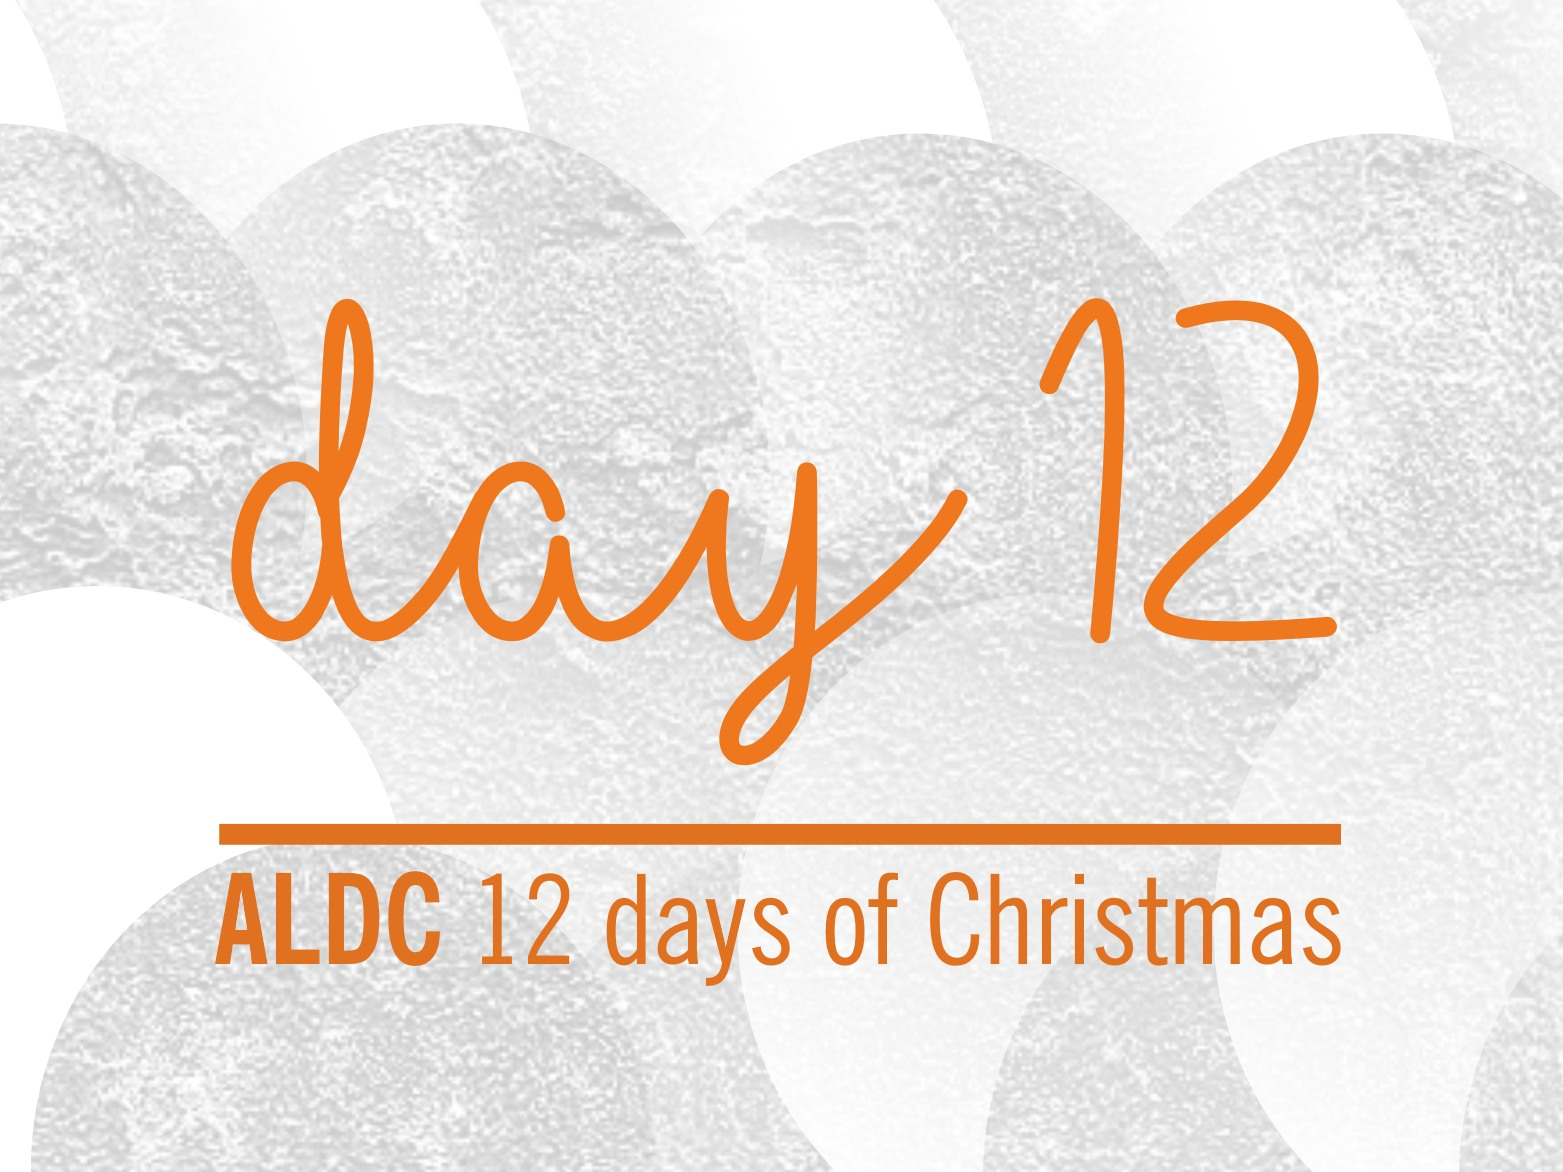 On the twelfth day of Christmas, ALDC gave to me…